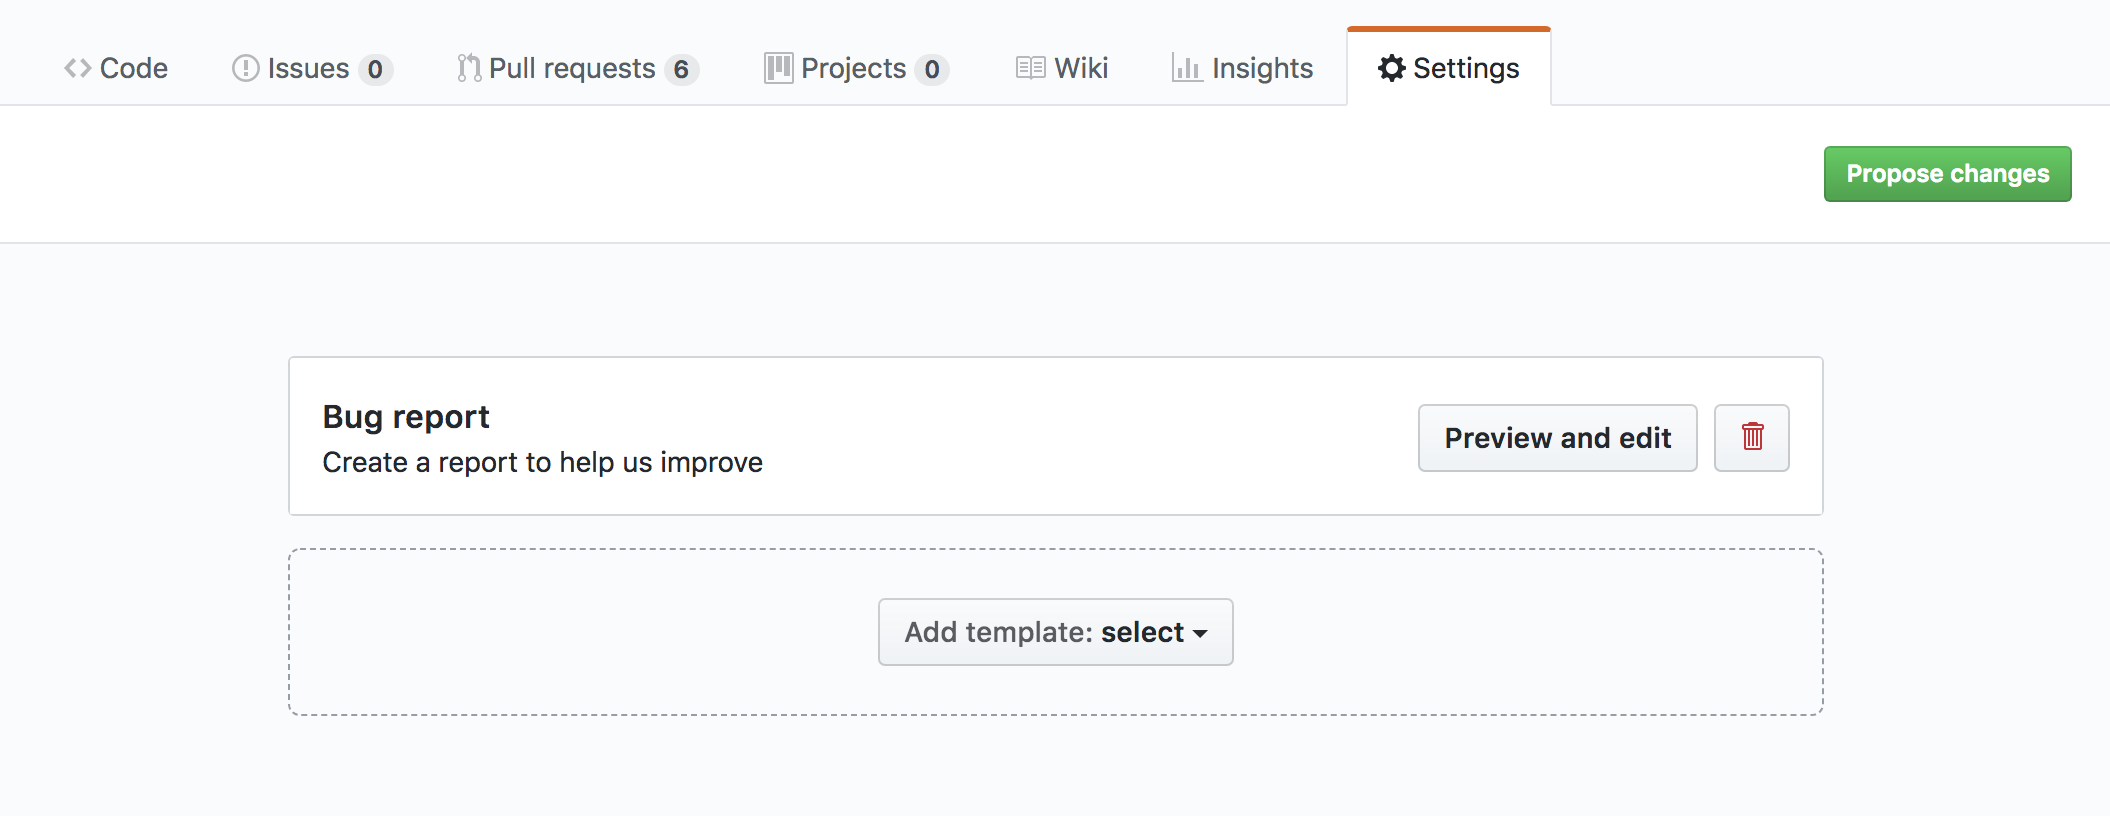 Use Improve Github Issues Templates Issue 22 Codeforafrica